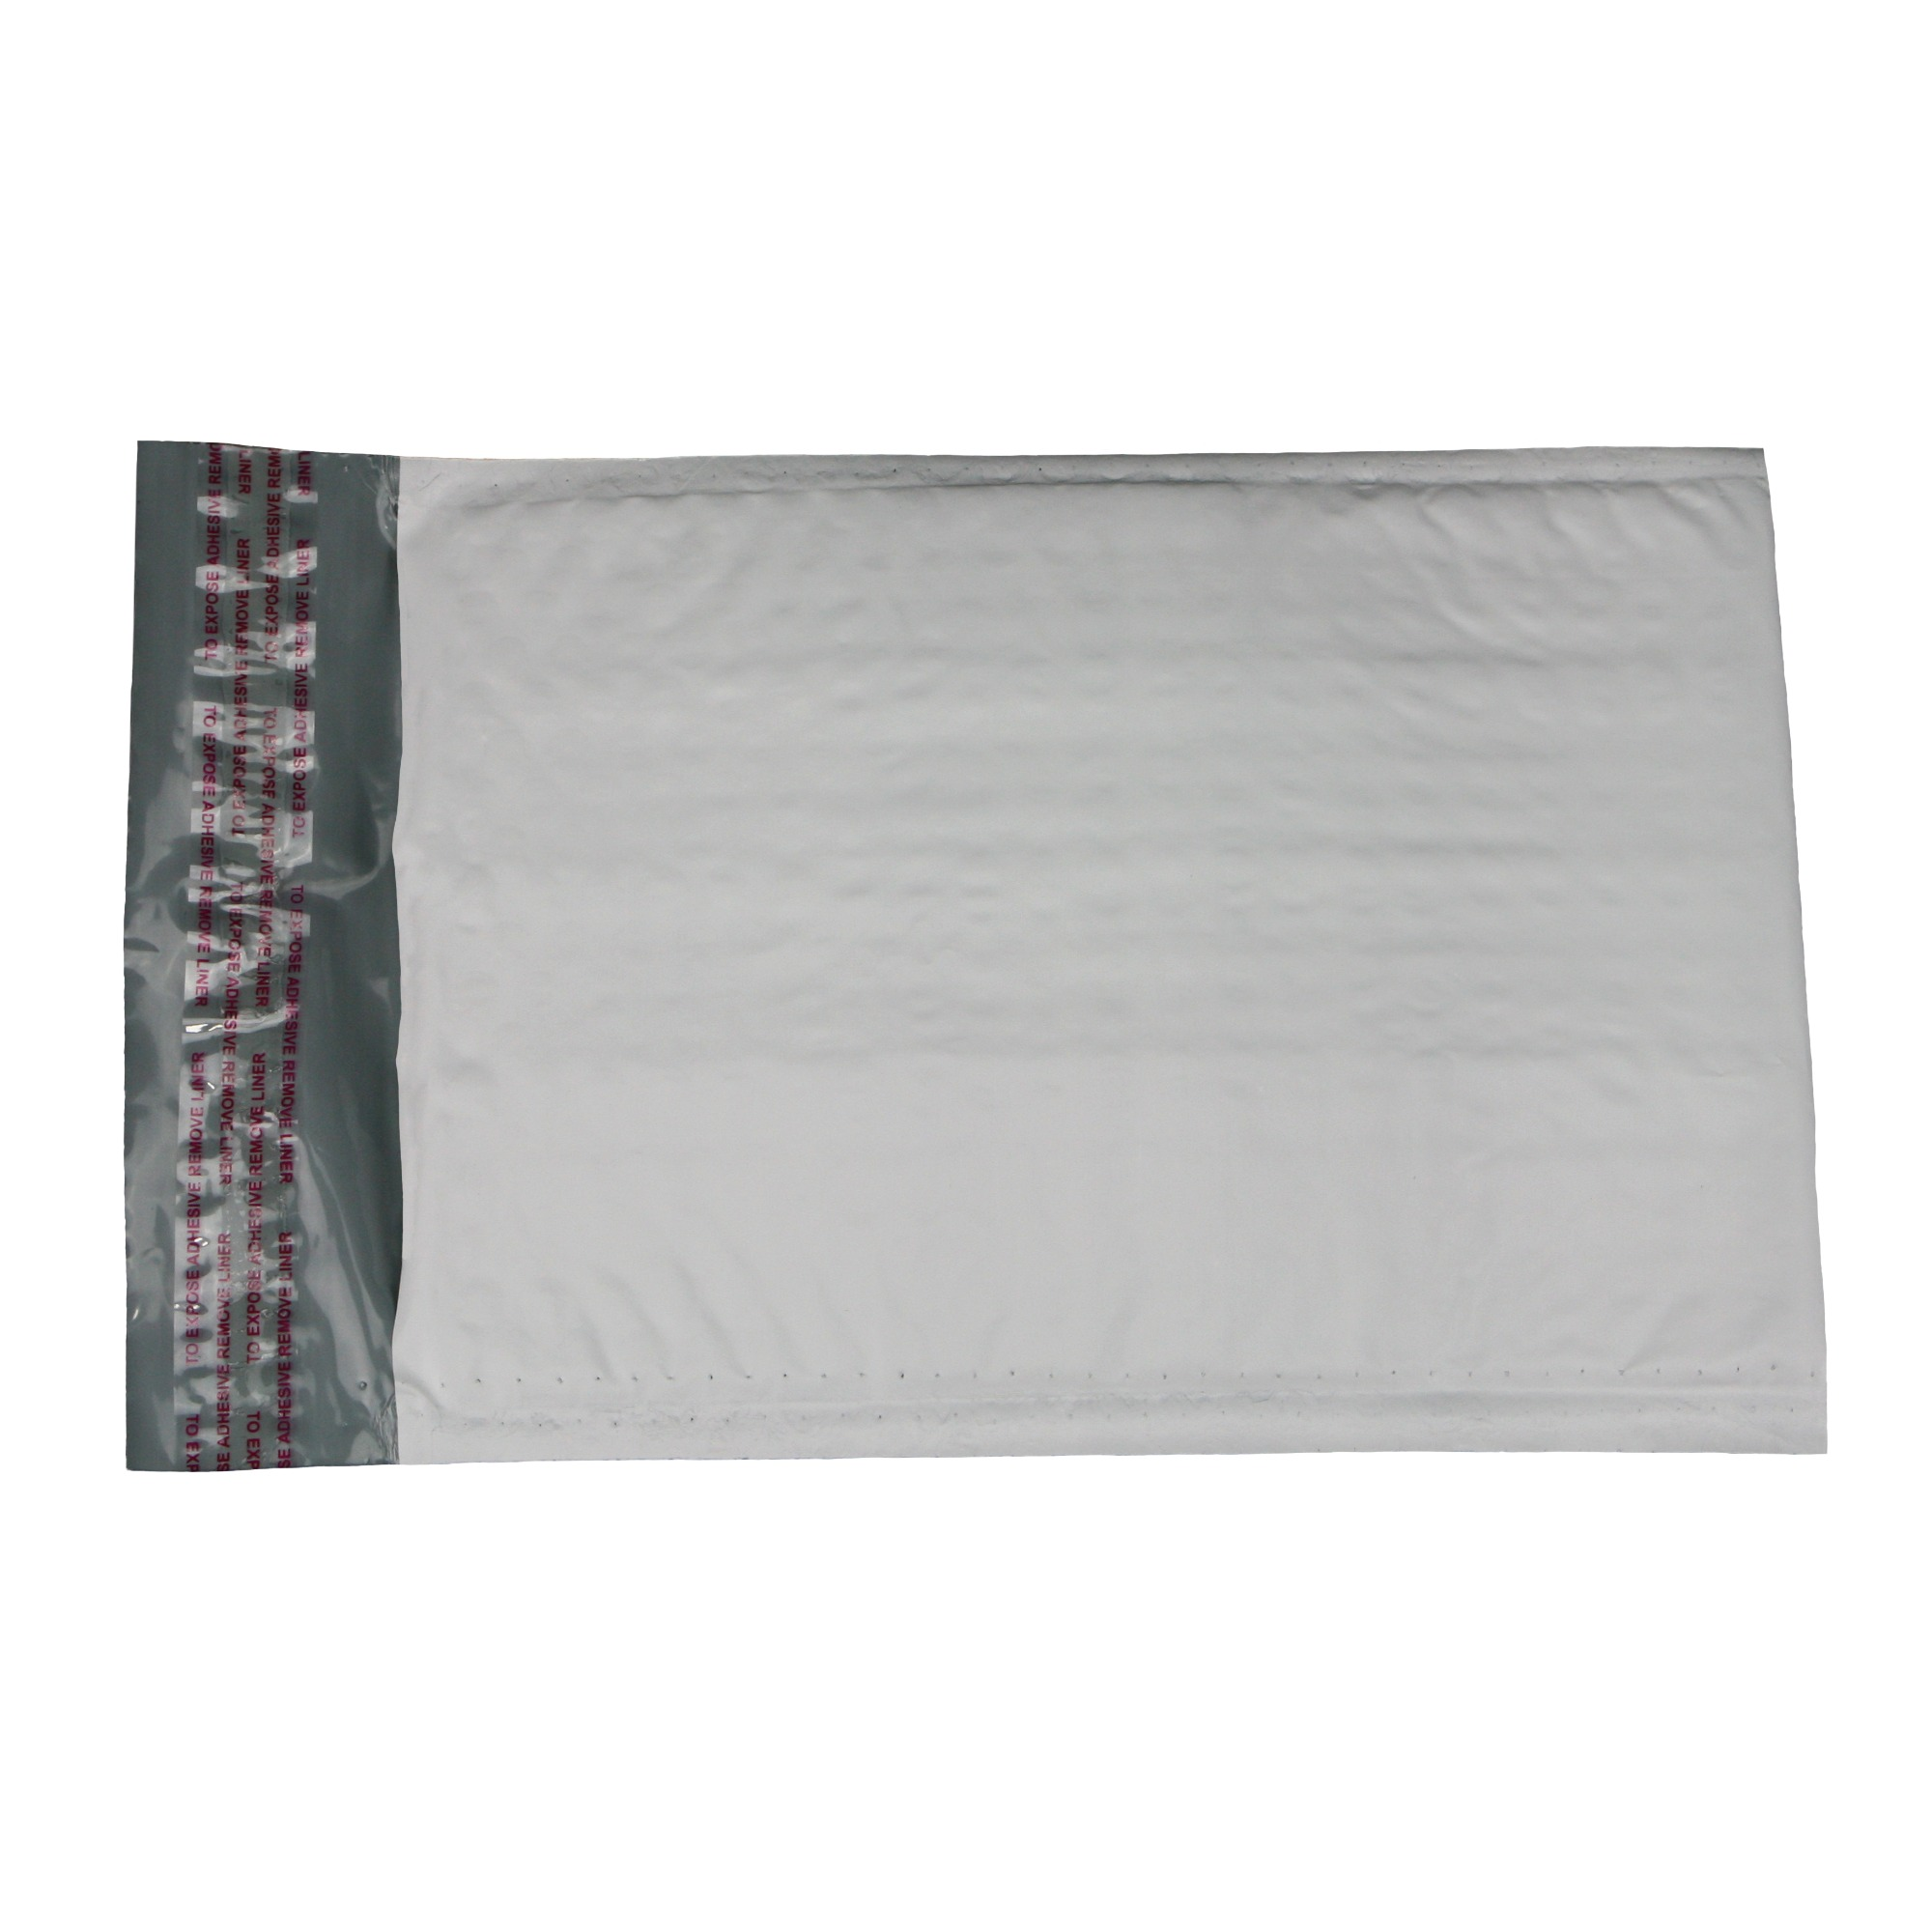 9.5x14.5 #4 POLY BUBBLE PADDED MAILERS ENVELOPES SHIPPING MAILING BAGS 9.5x13.5